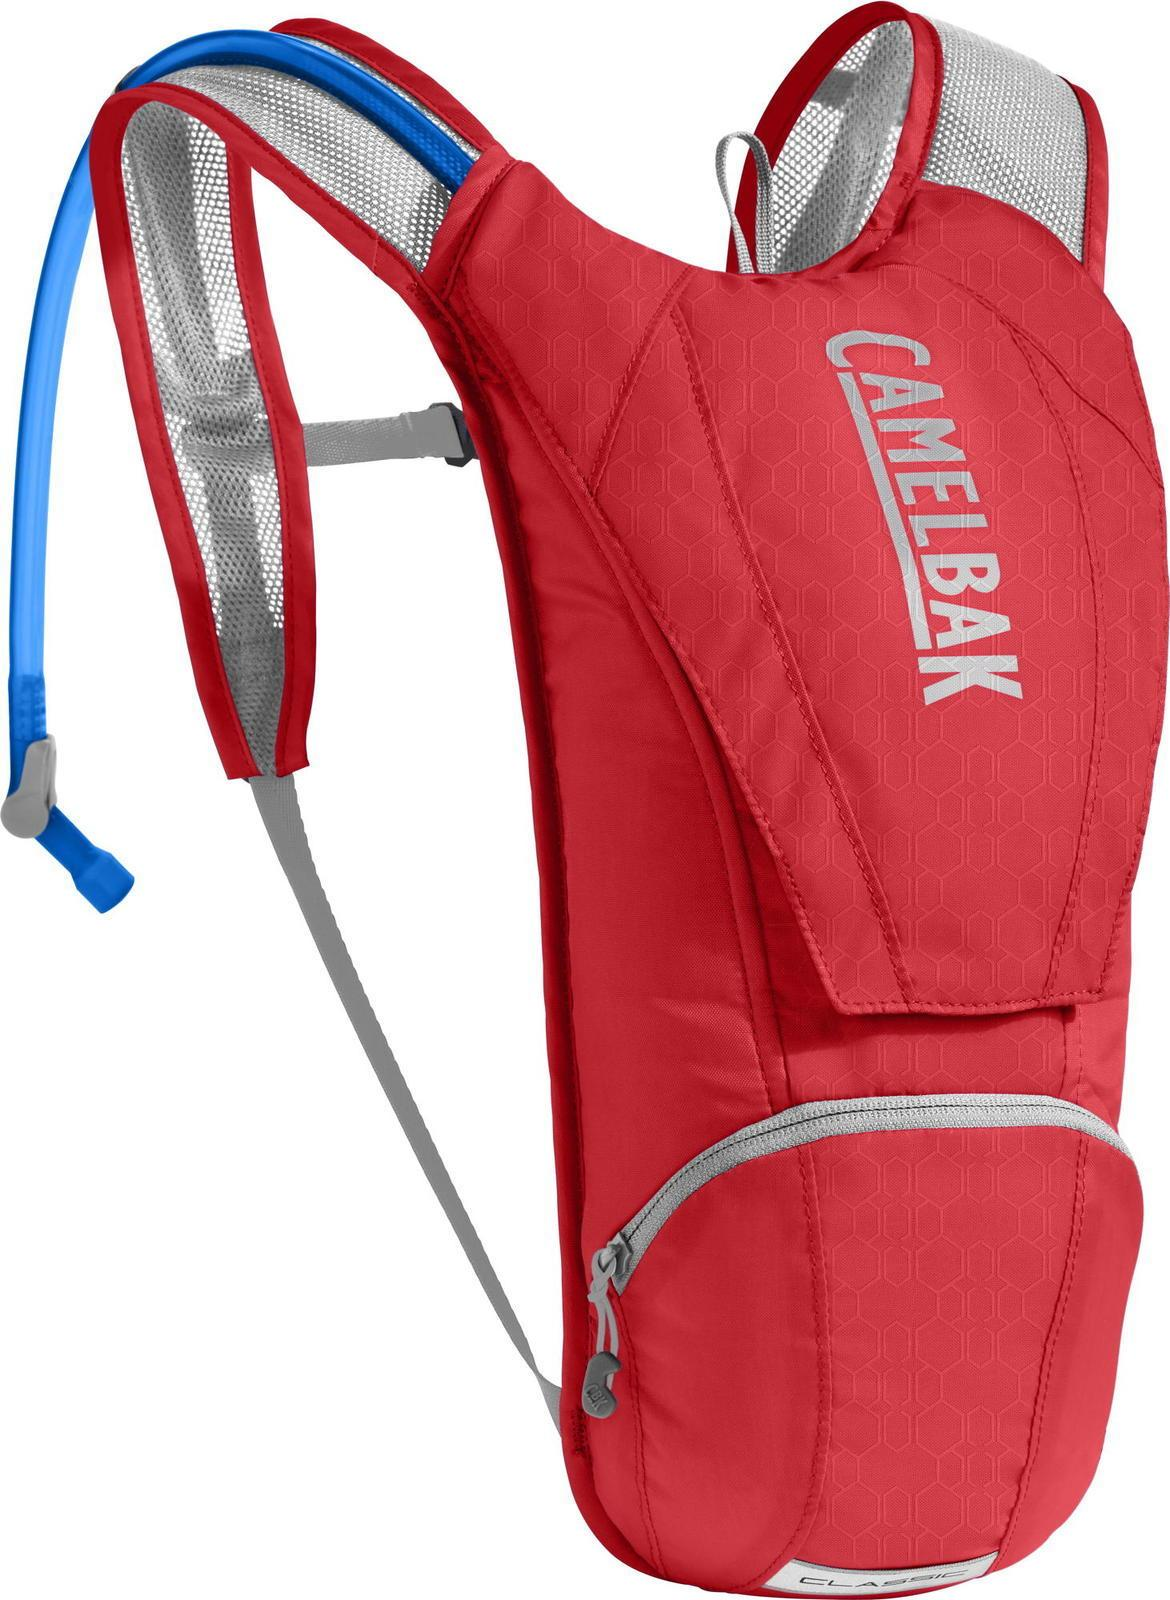 CamelBak Classic 2.5L Racing Red/Silver Bag - Cycles Galleria Melbourne